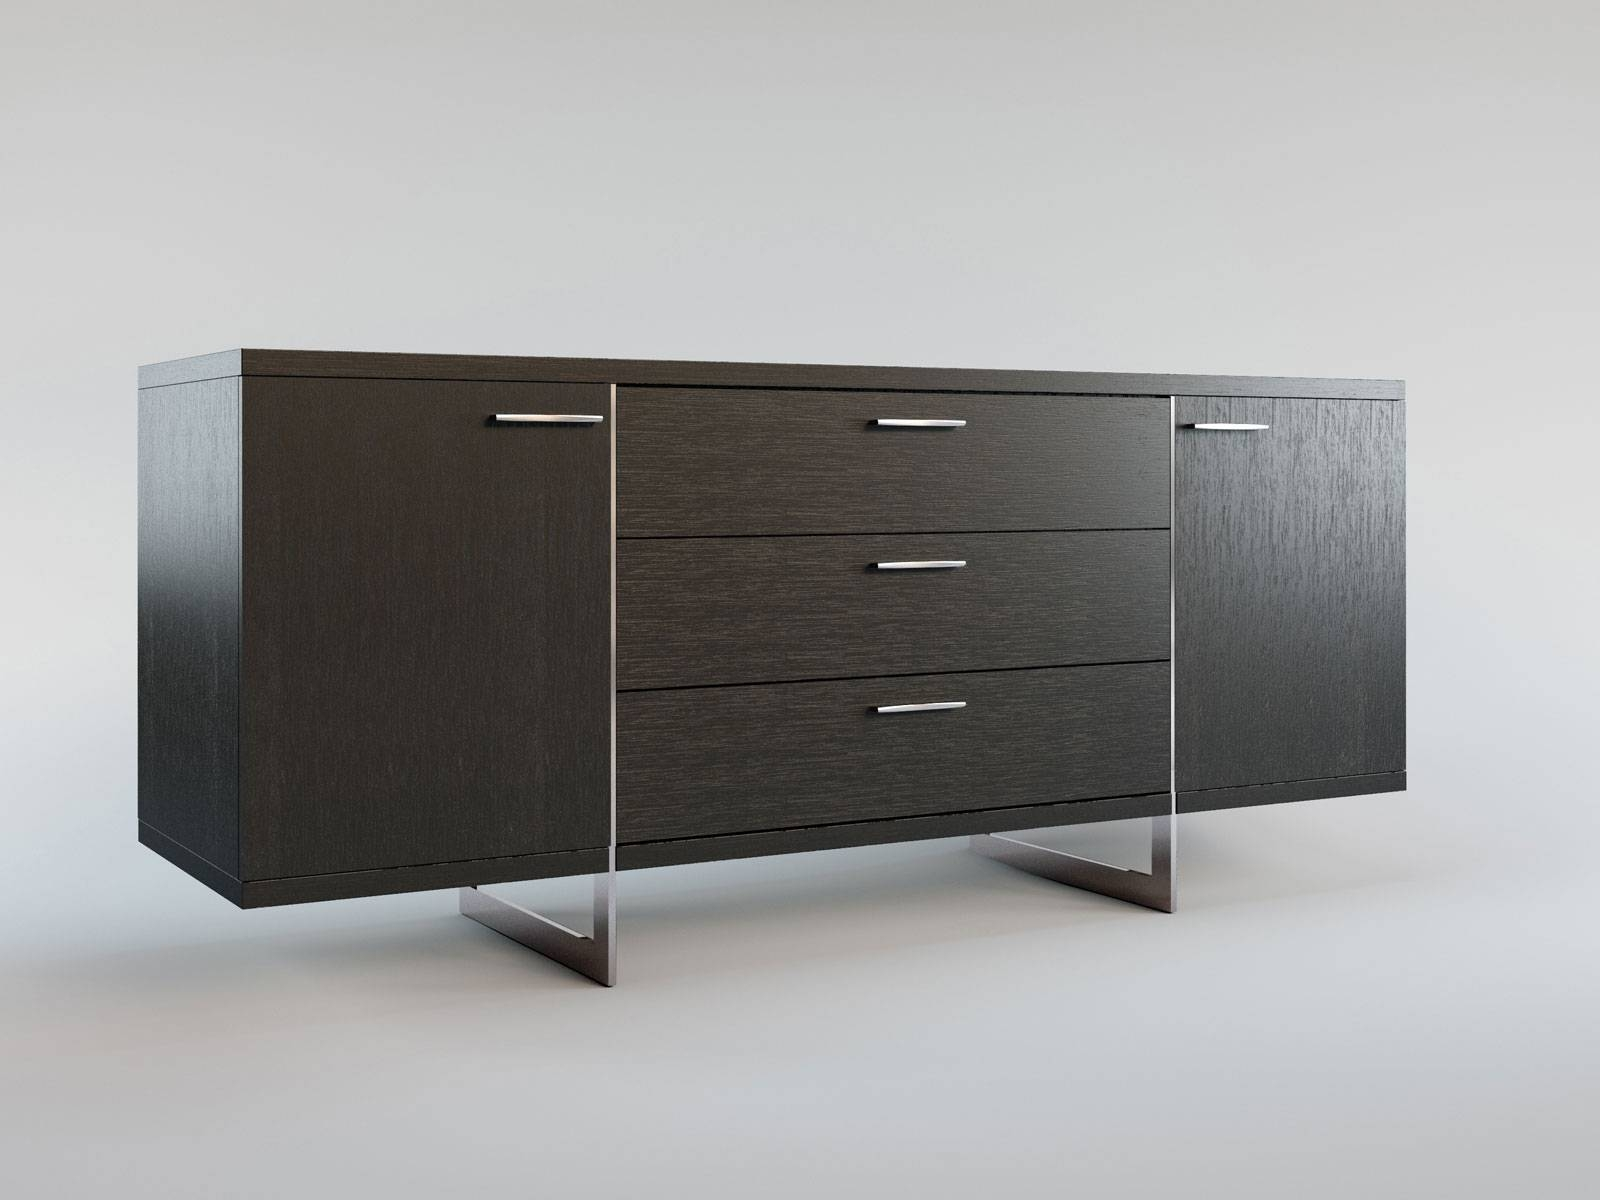 Contemporary Sideboard Buffet With Three Storage Drawers Tulsa regarding Contemporary Sideboard Cabinets (Image 7 of 30)